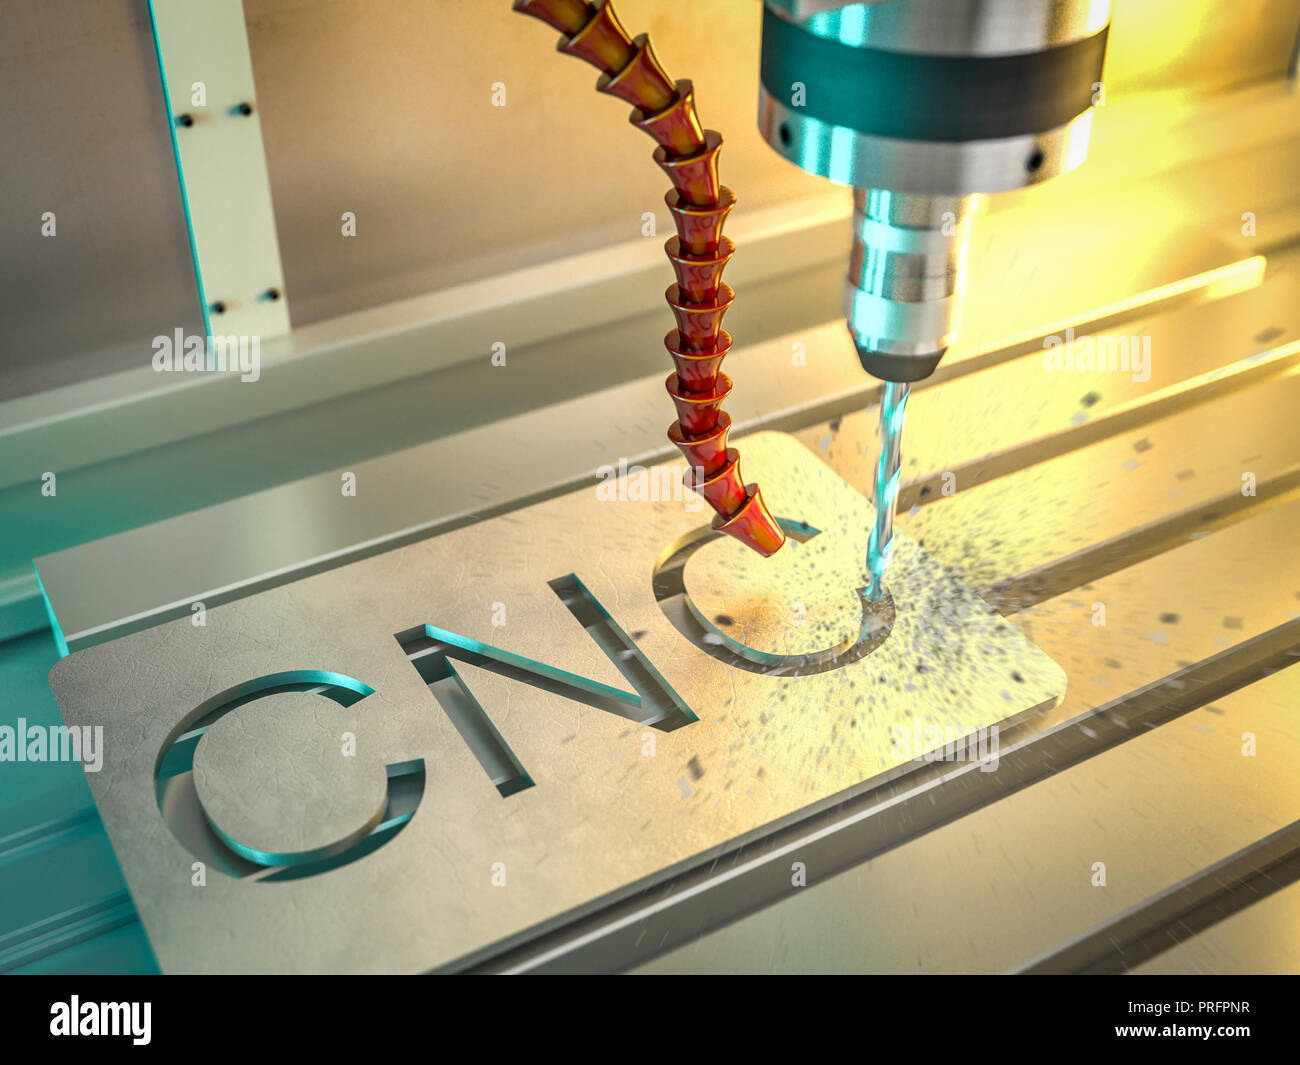 3d rendering image of cnc machine - Stock Image